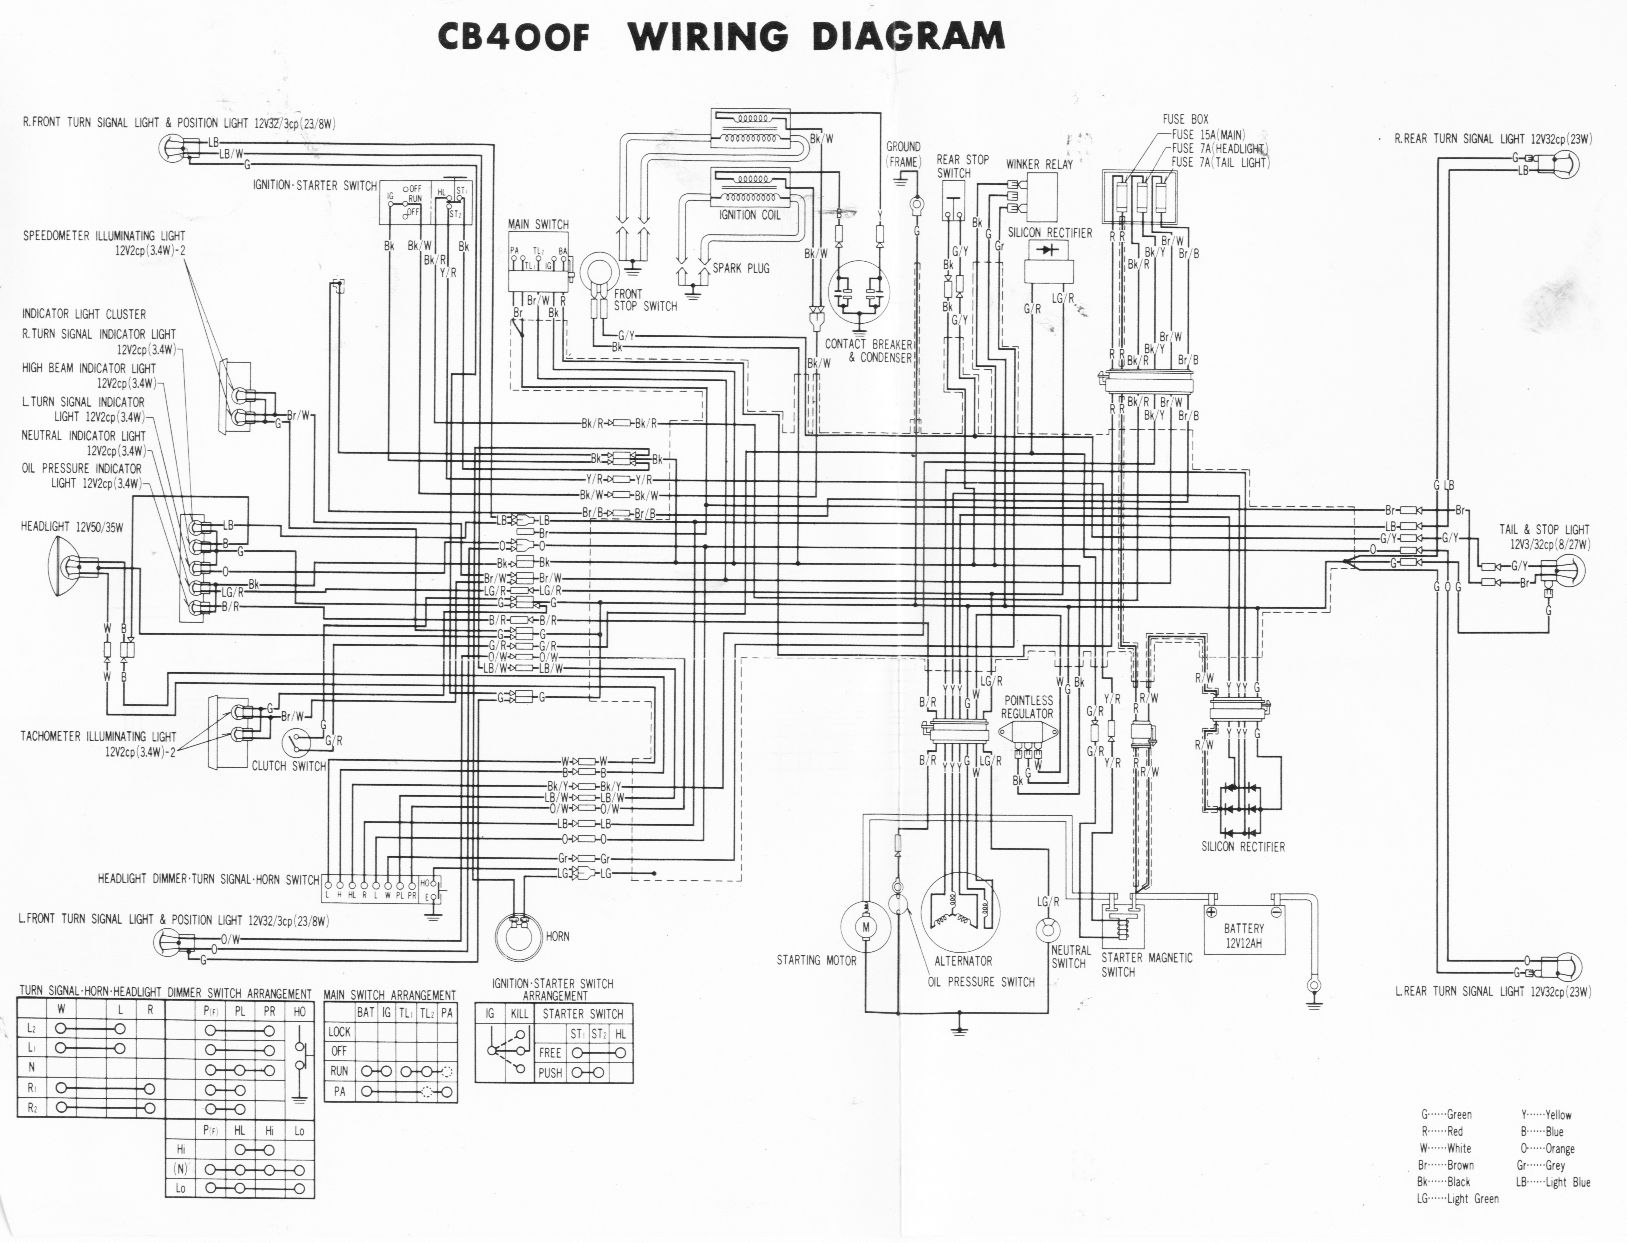 cb400f rh manuals sohc4 net Simple Wiring Diagrams cb400f wiring harness diagram